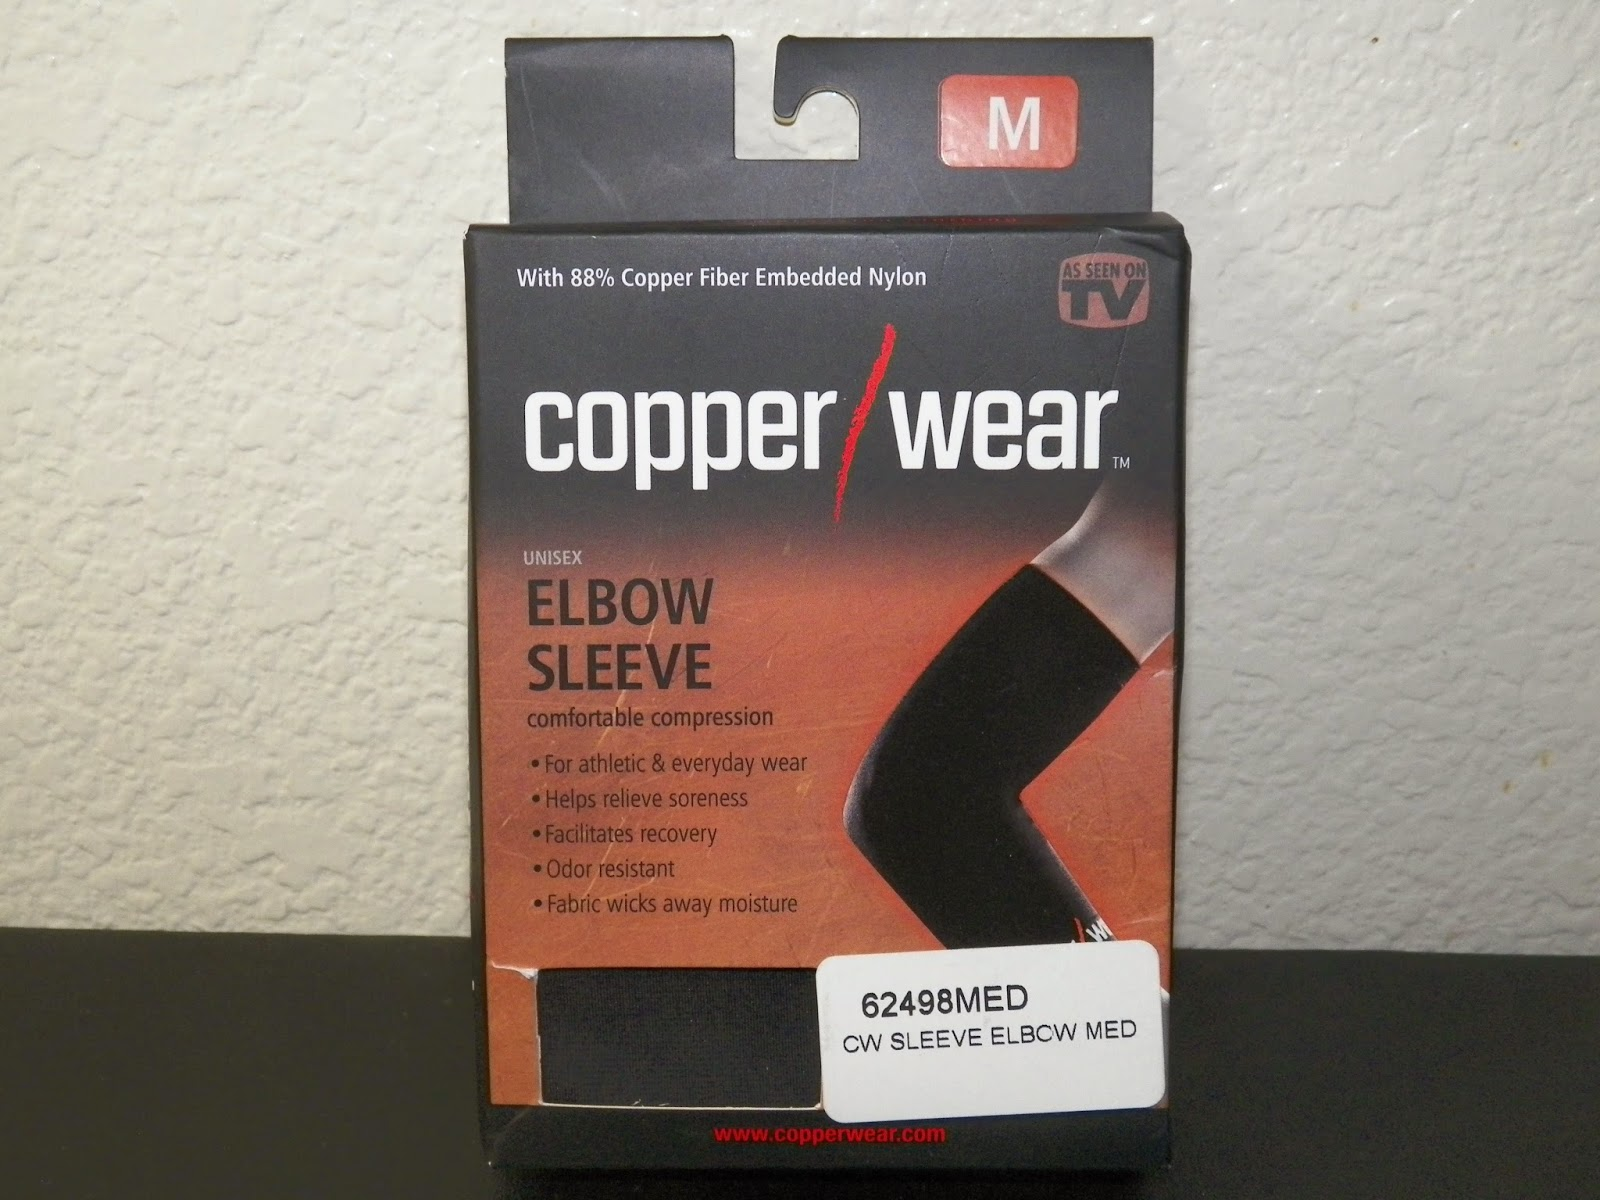 CopperWearElbowSleeve.jpg